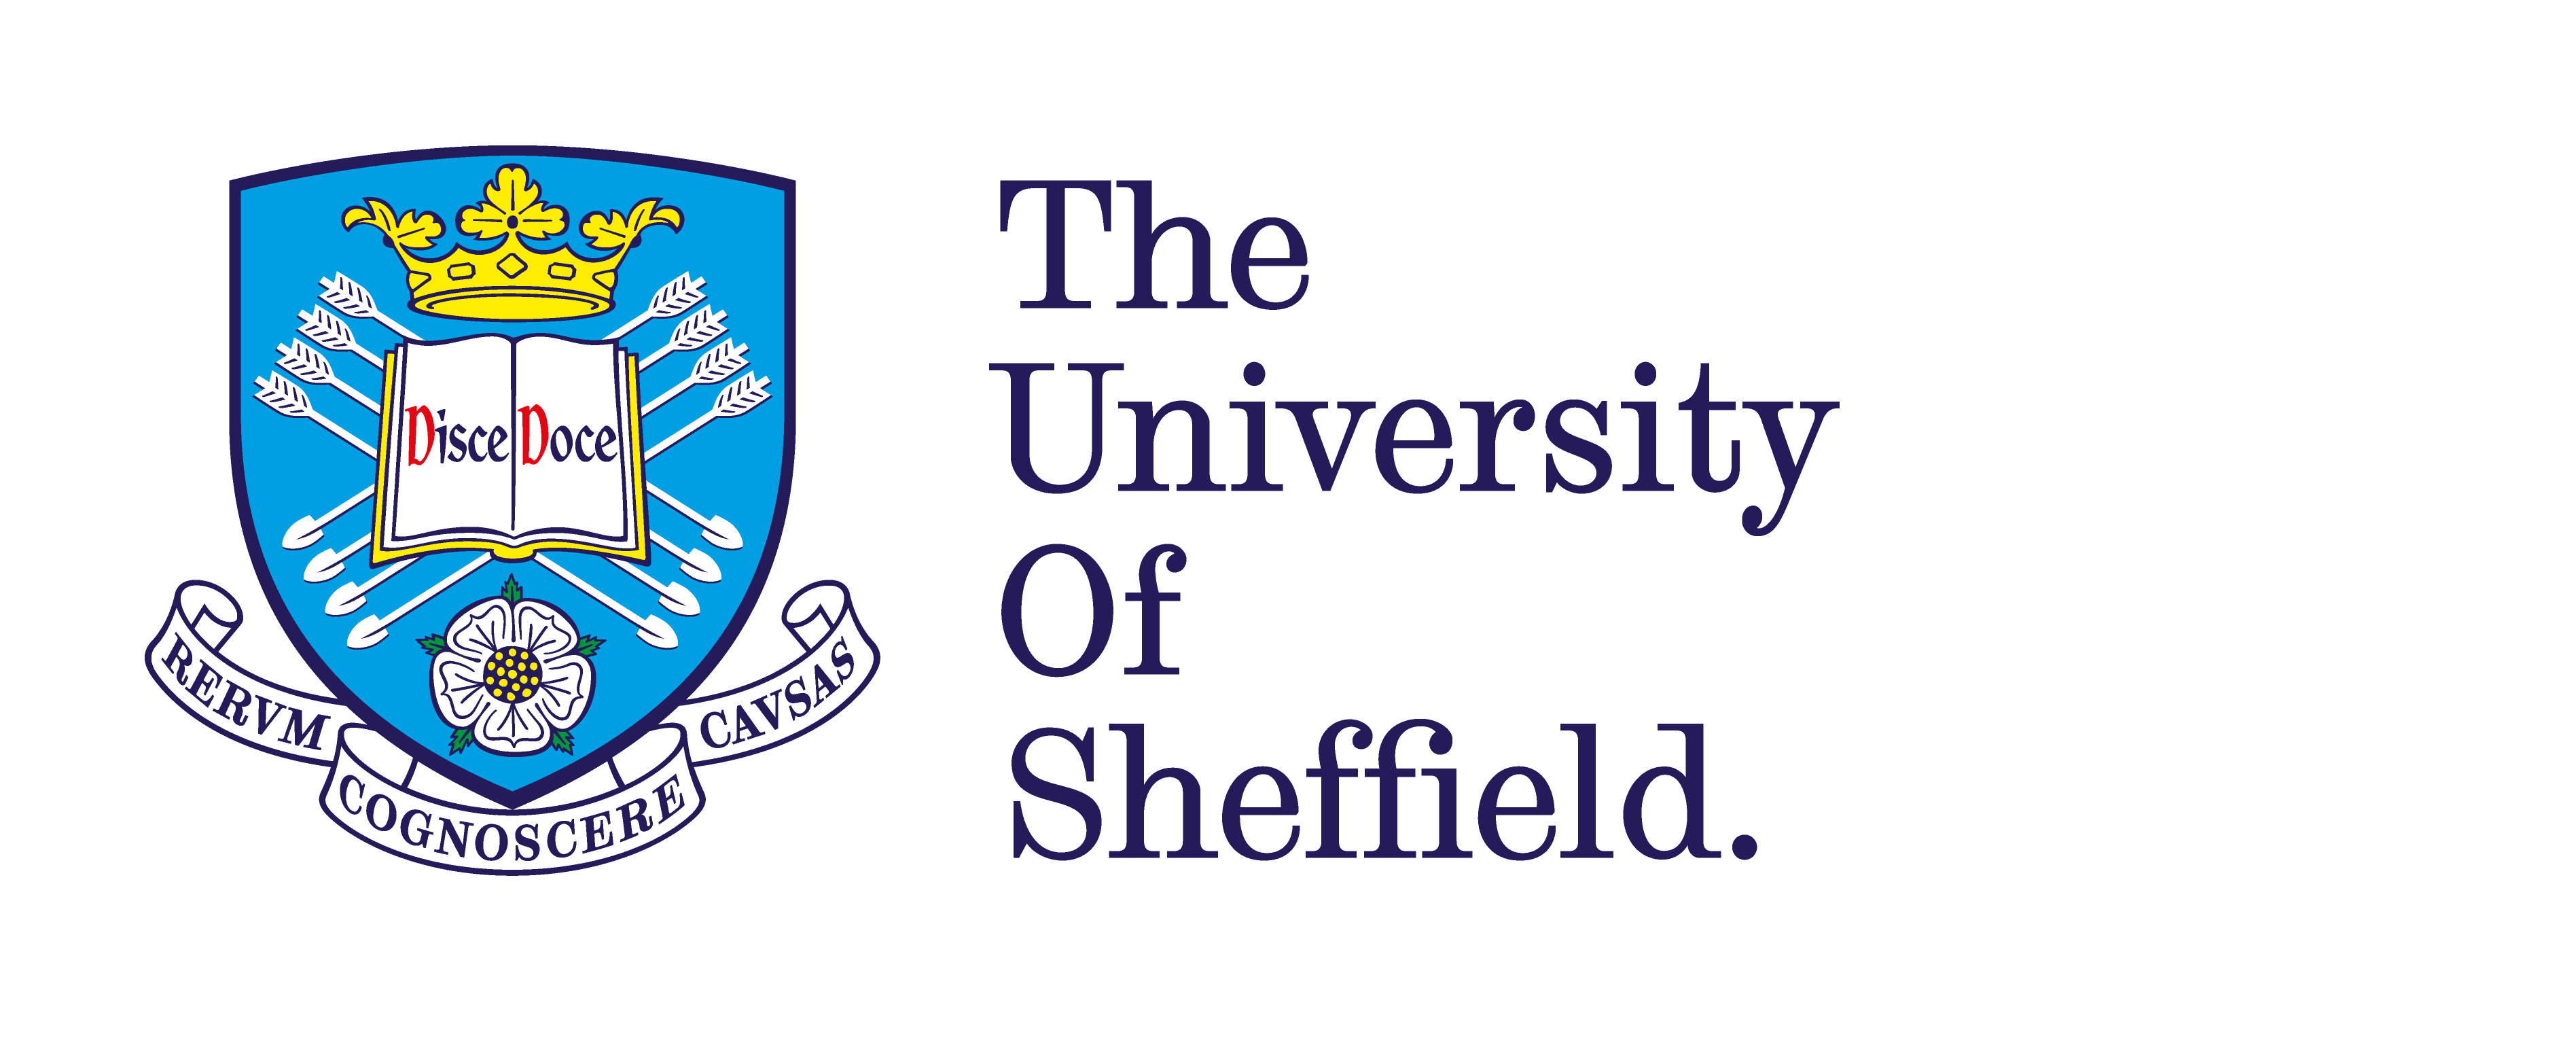 Validated by The University of Sheffield